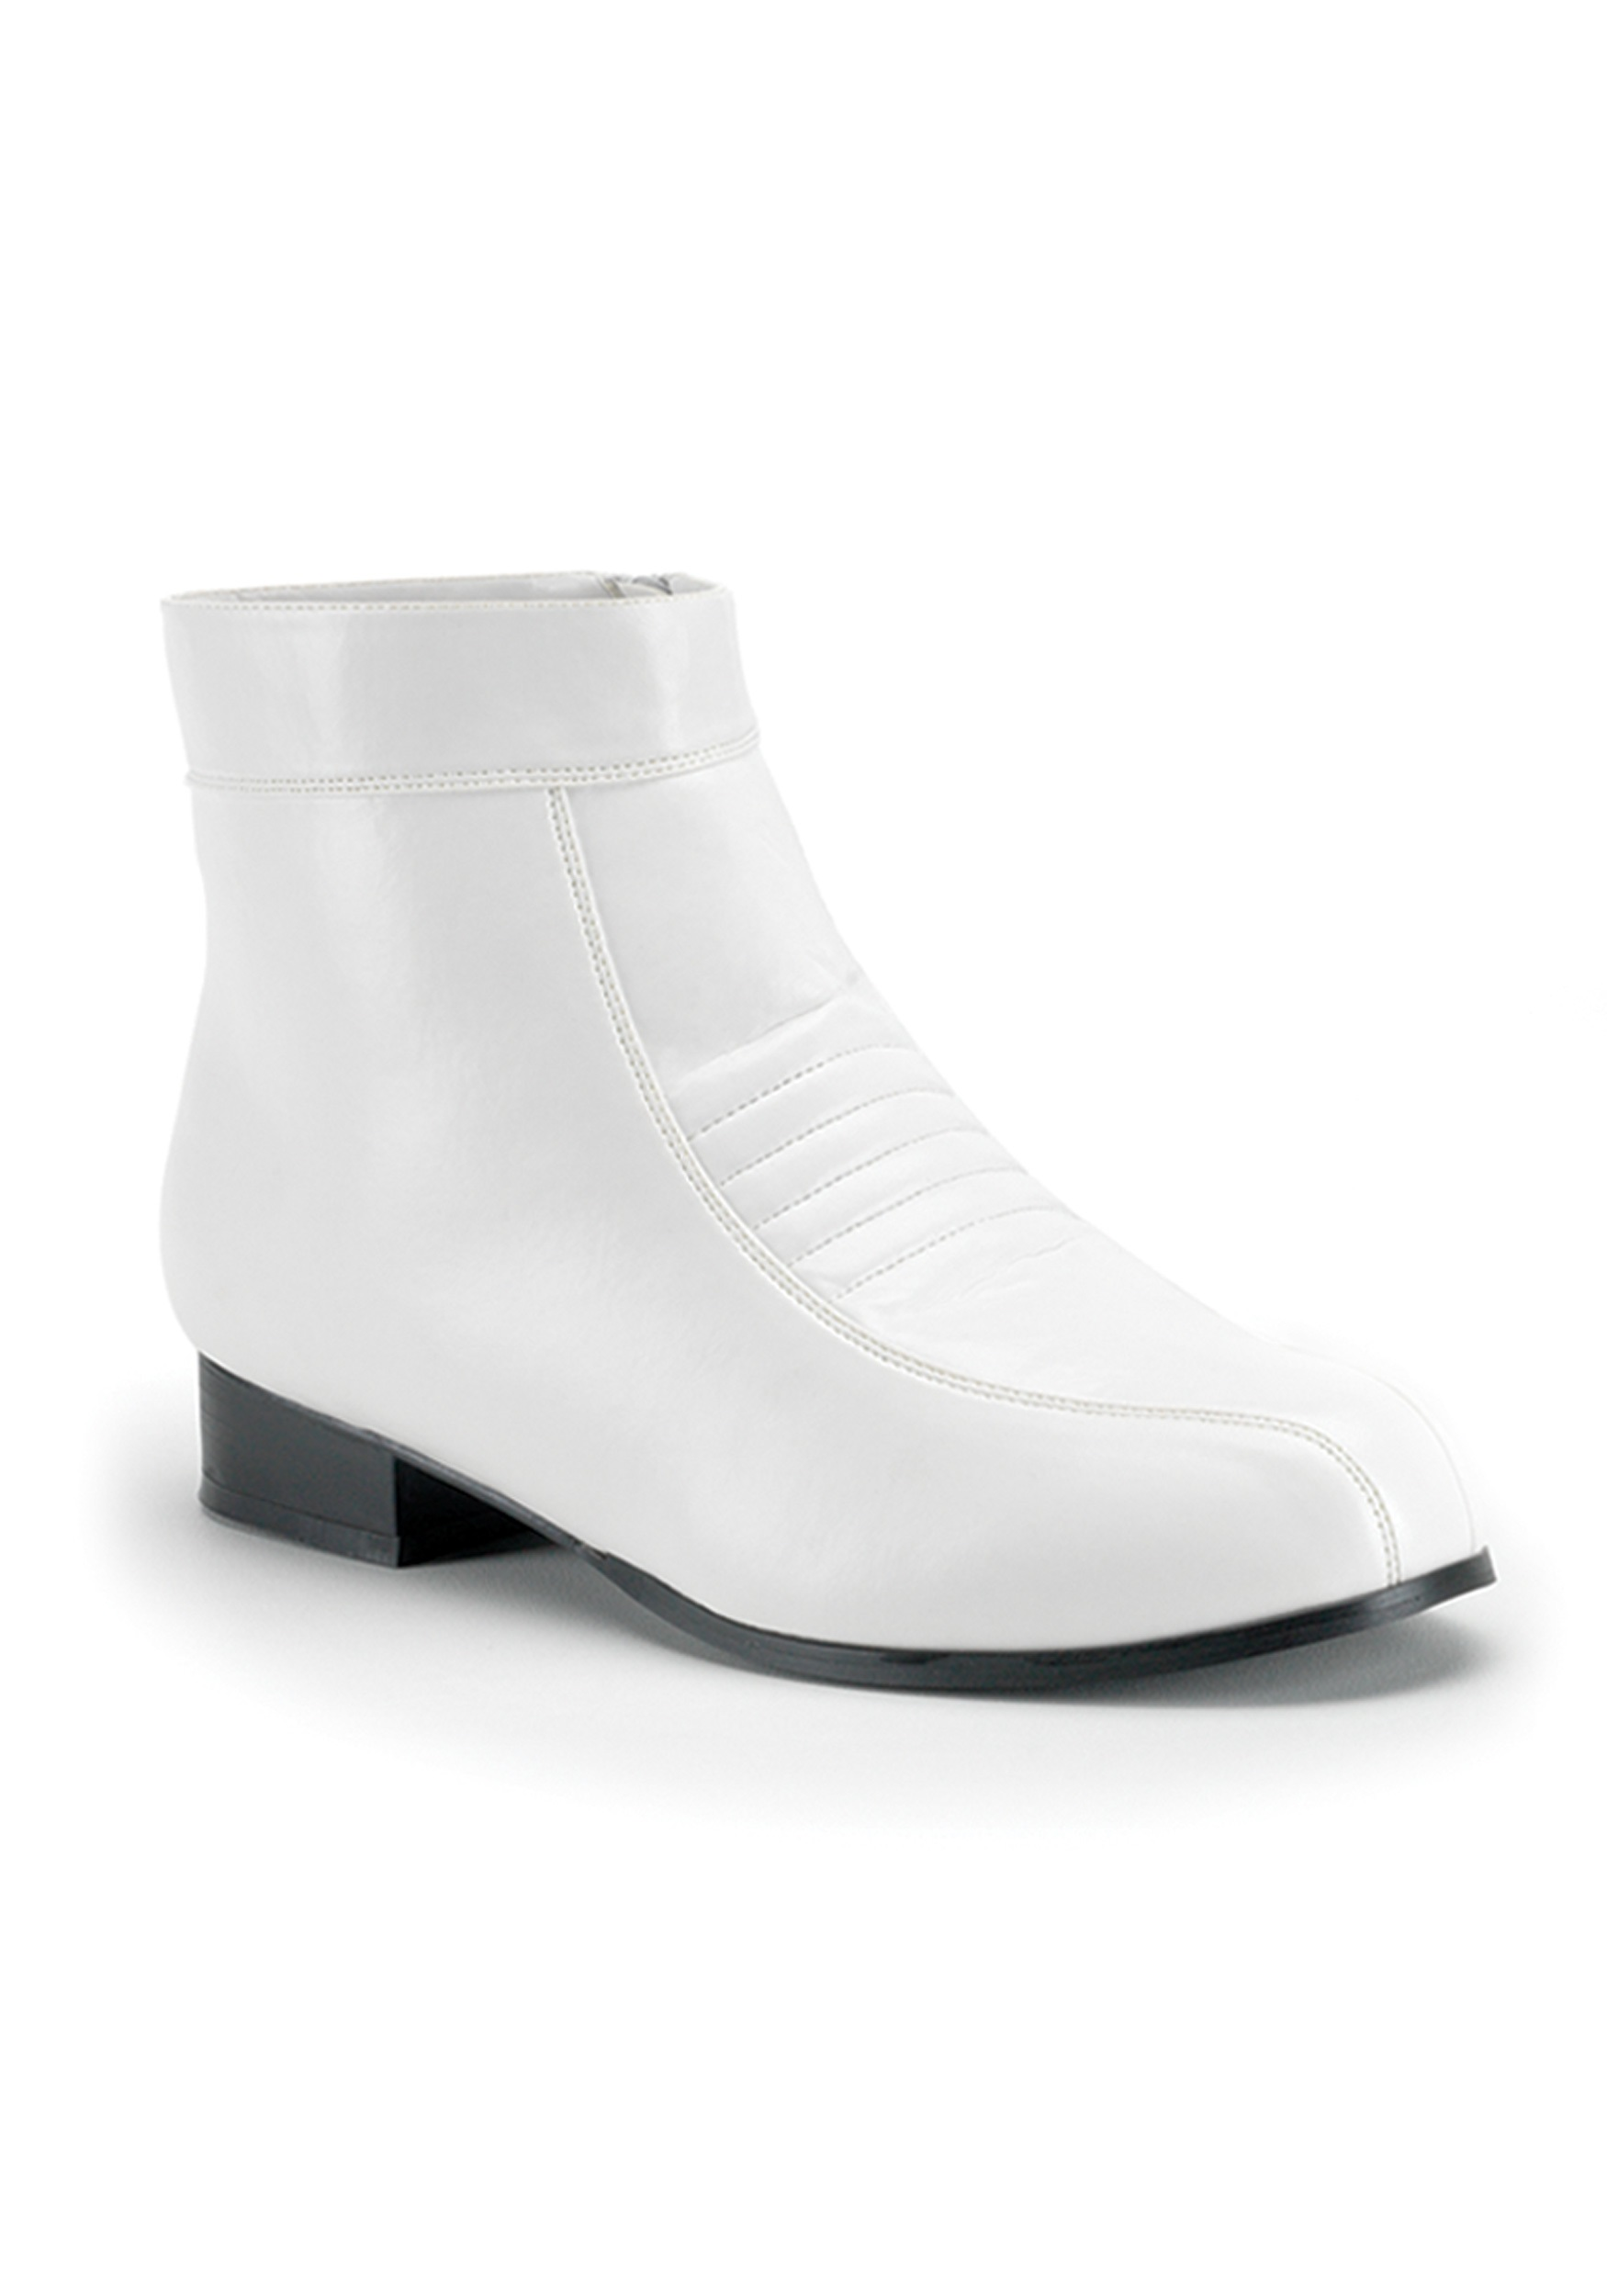 White Boots For Men ELt9Ww4H